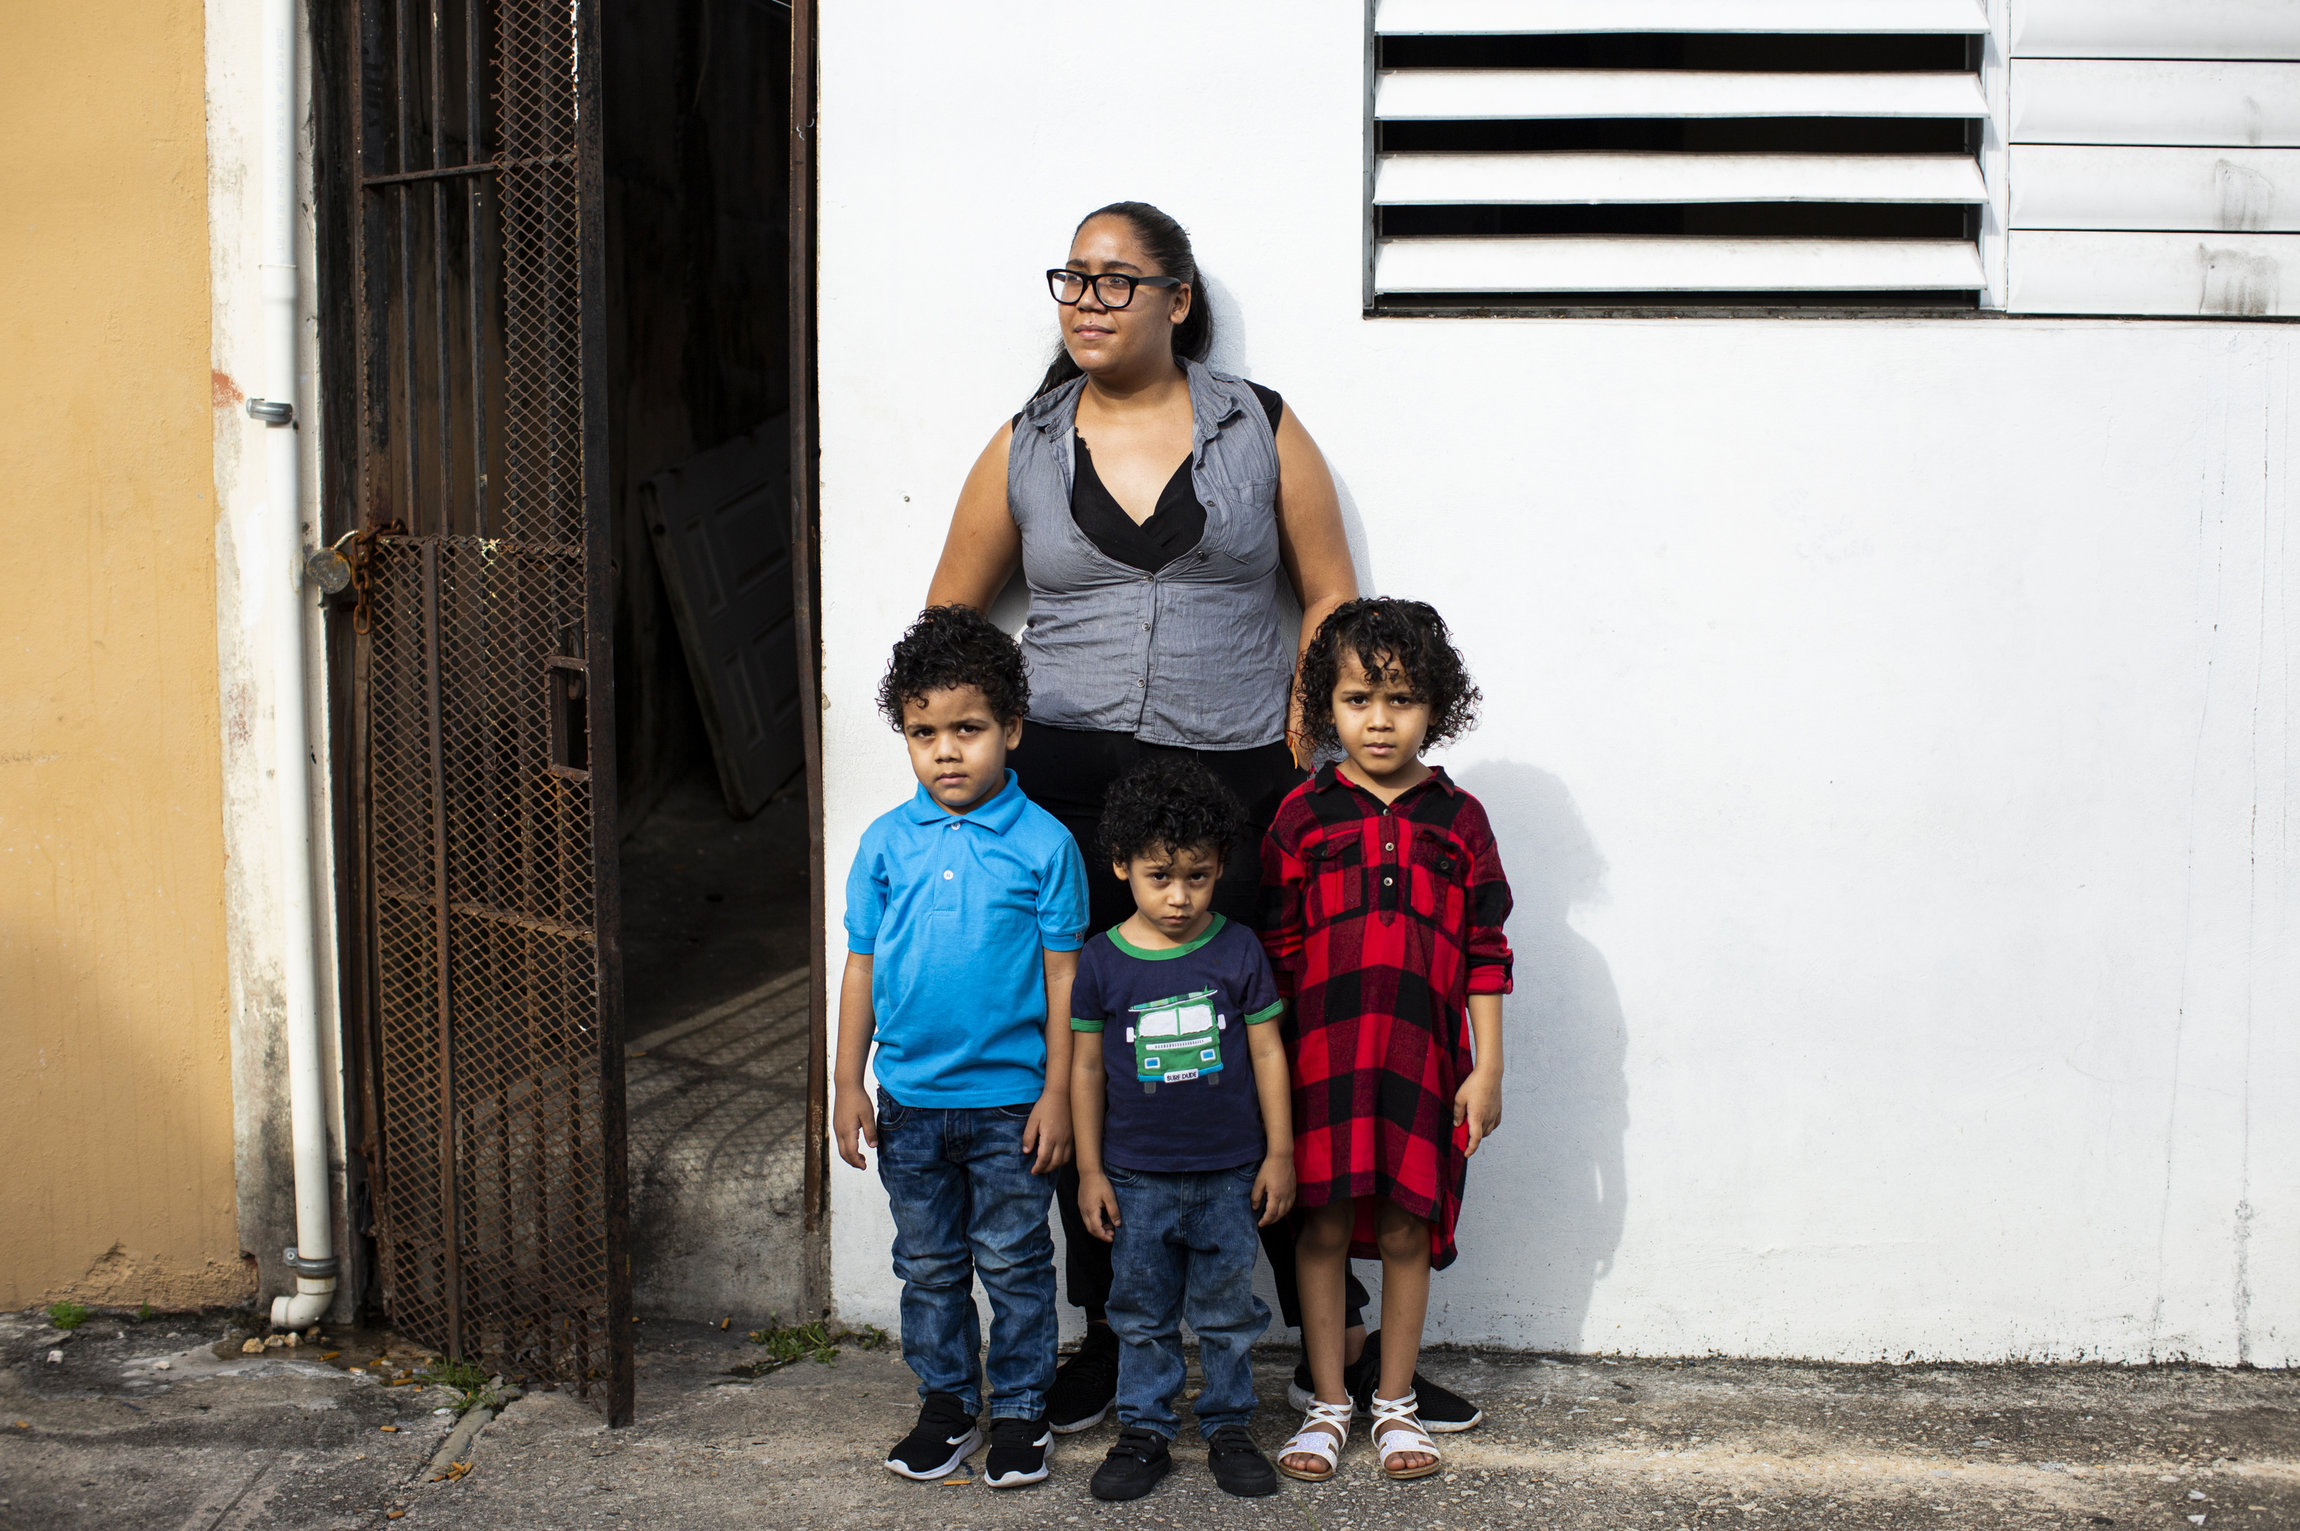 Elia Gonzalez stands with her children, Jesiel, Ansiel and Angellia, in front of a white wall with a vent, next to a metal-grated door.